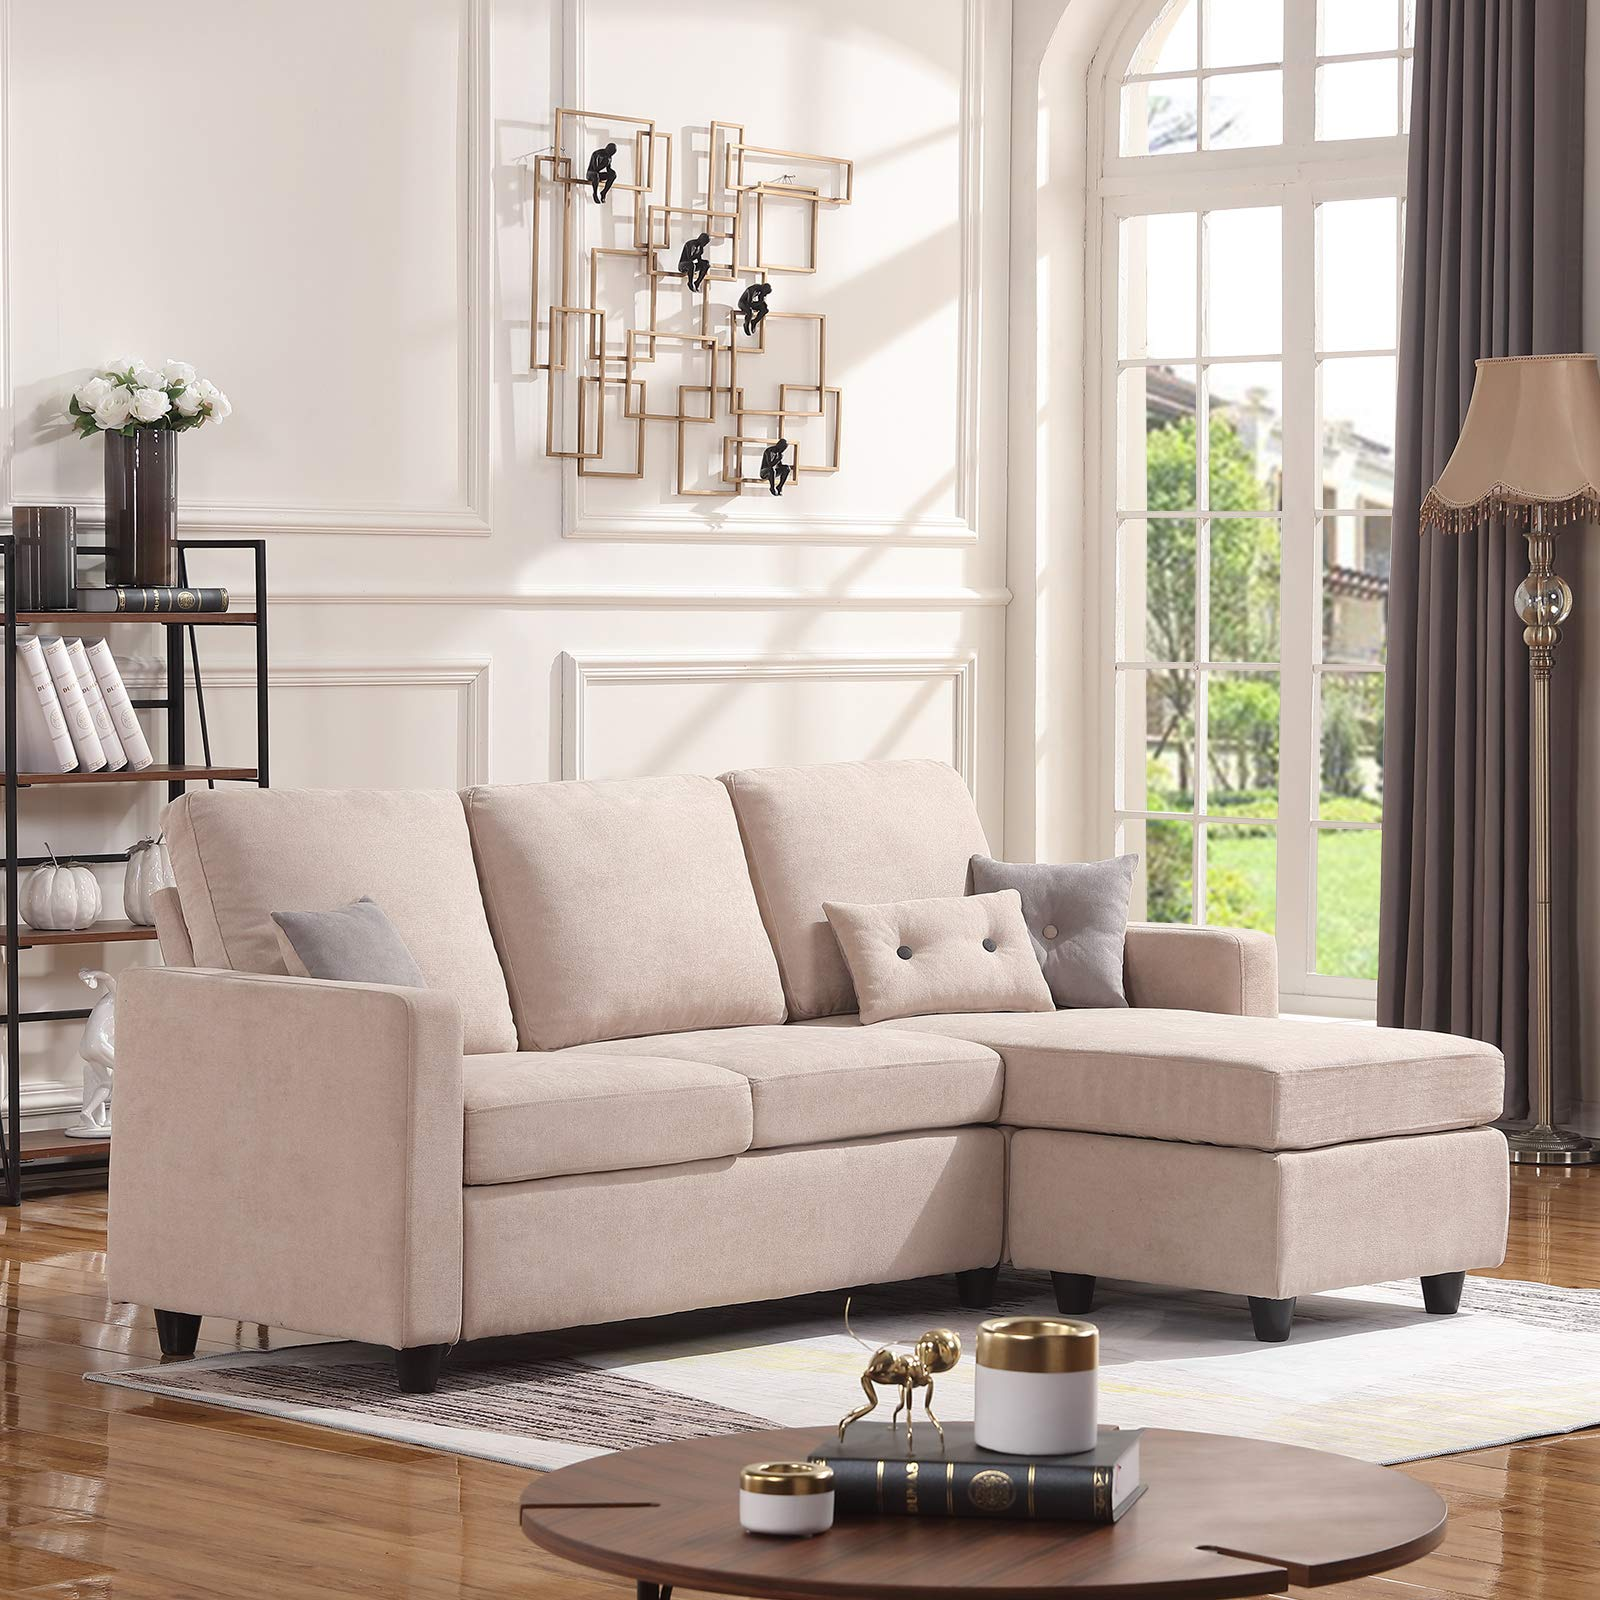 HONBAY Convertible Sectional L Shaped Modern